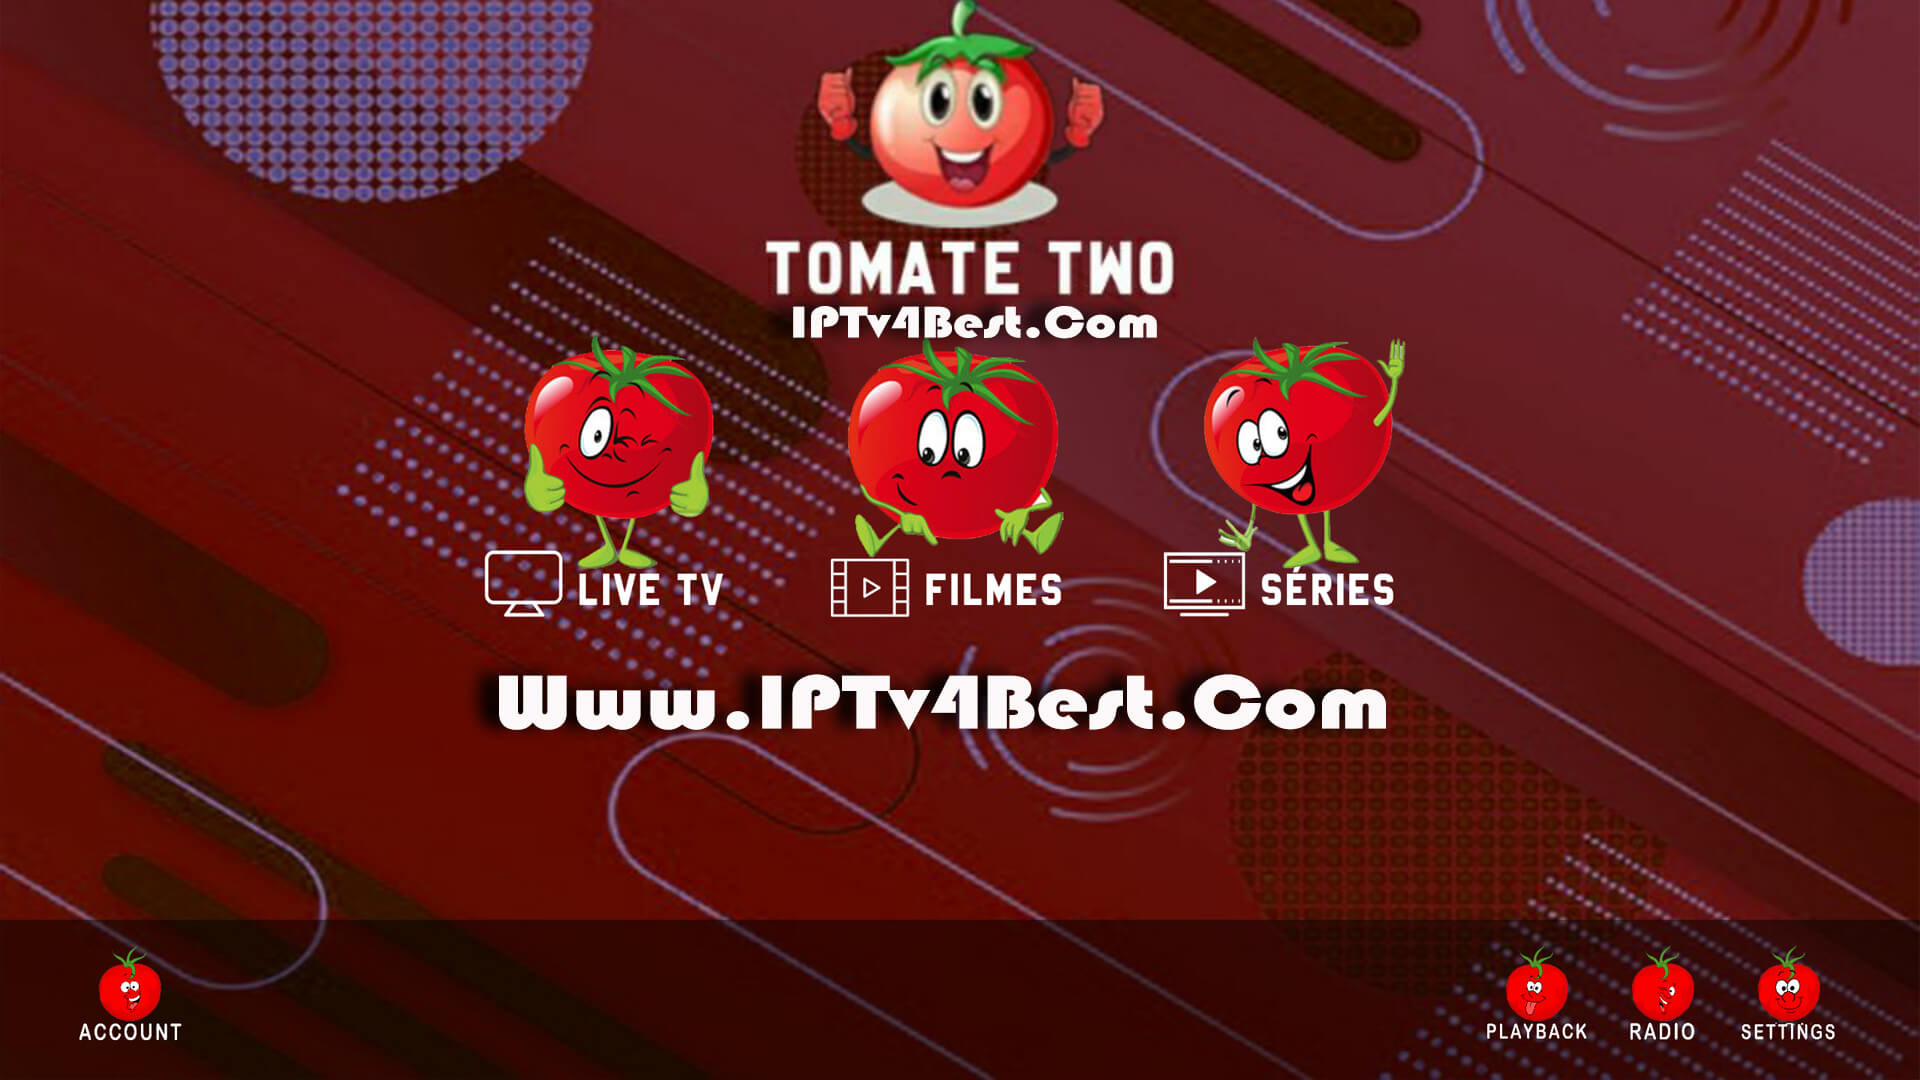 Tomate Two Tv APK Code Premium Activation By IPTV4BEST.COM